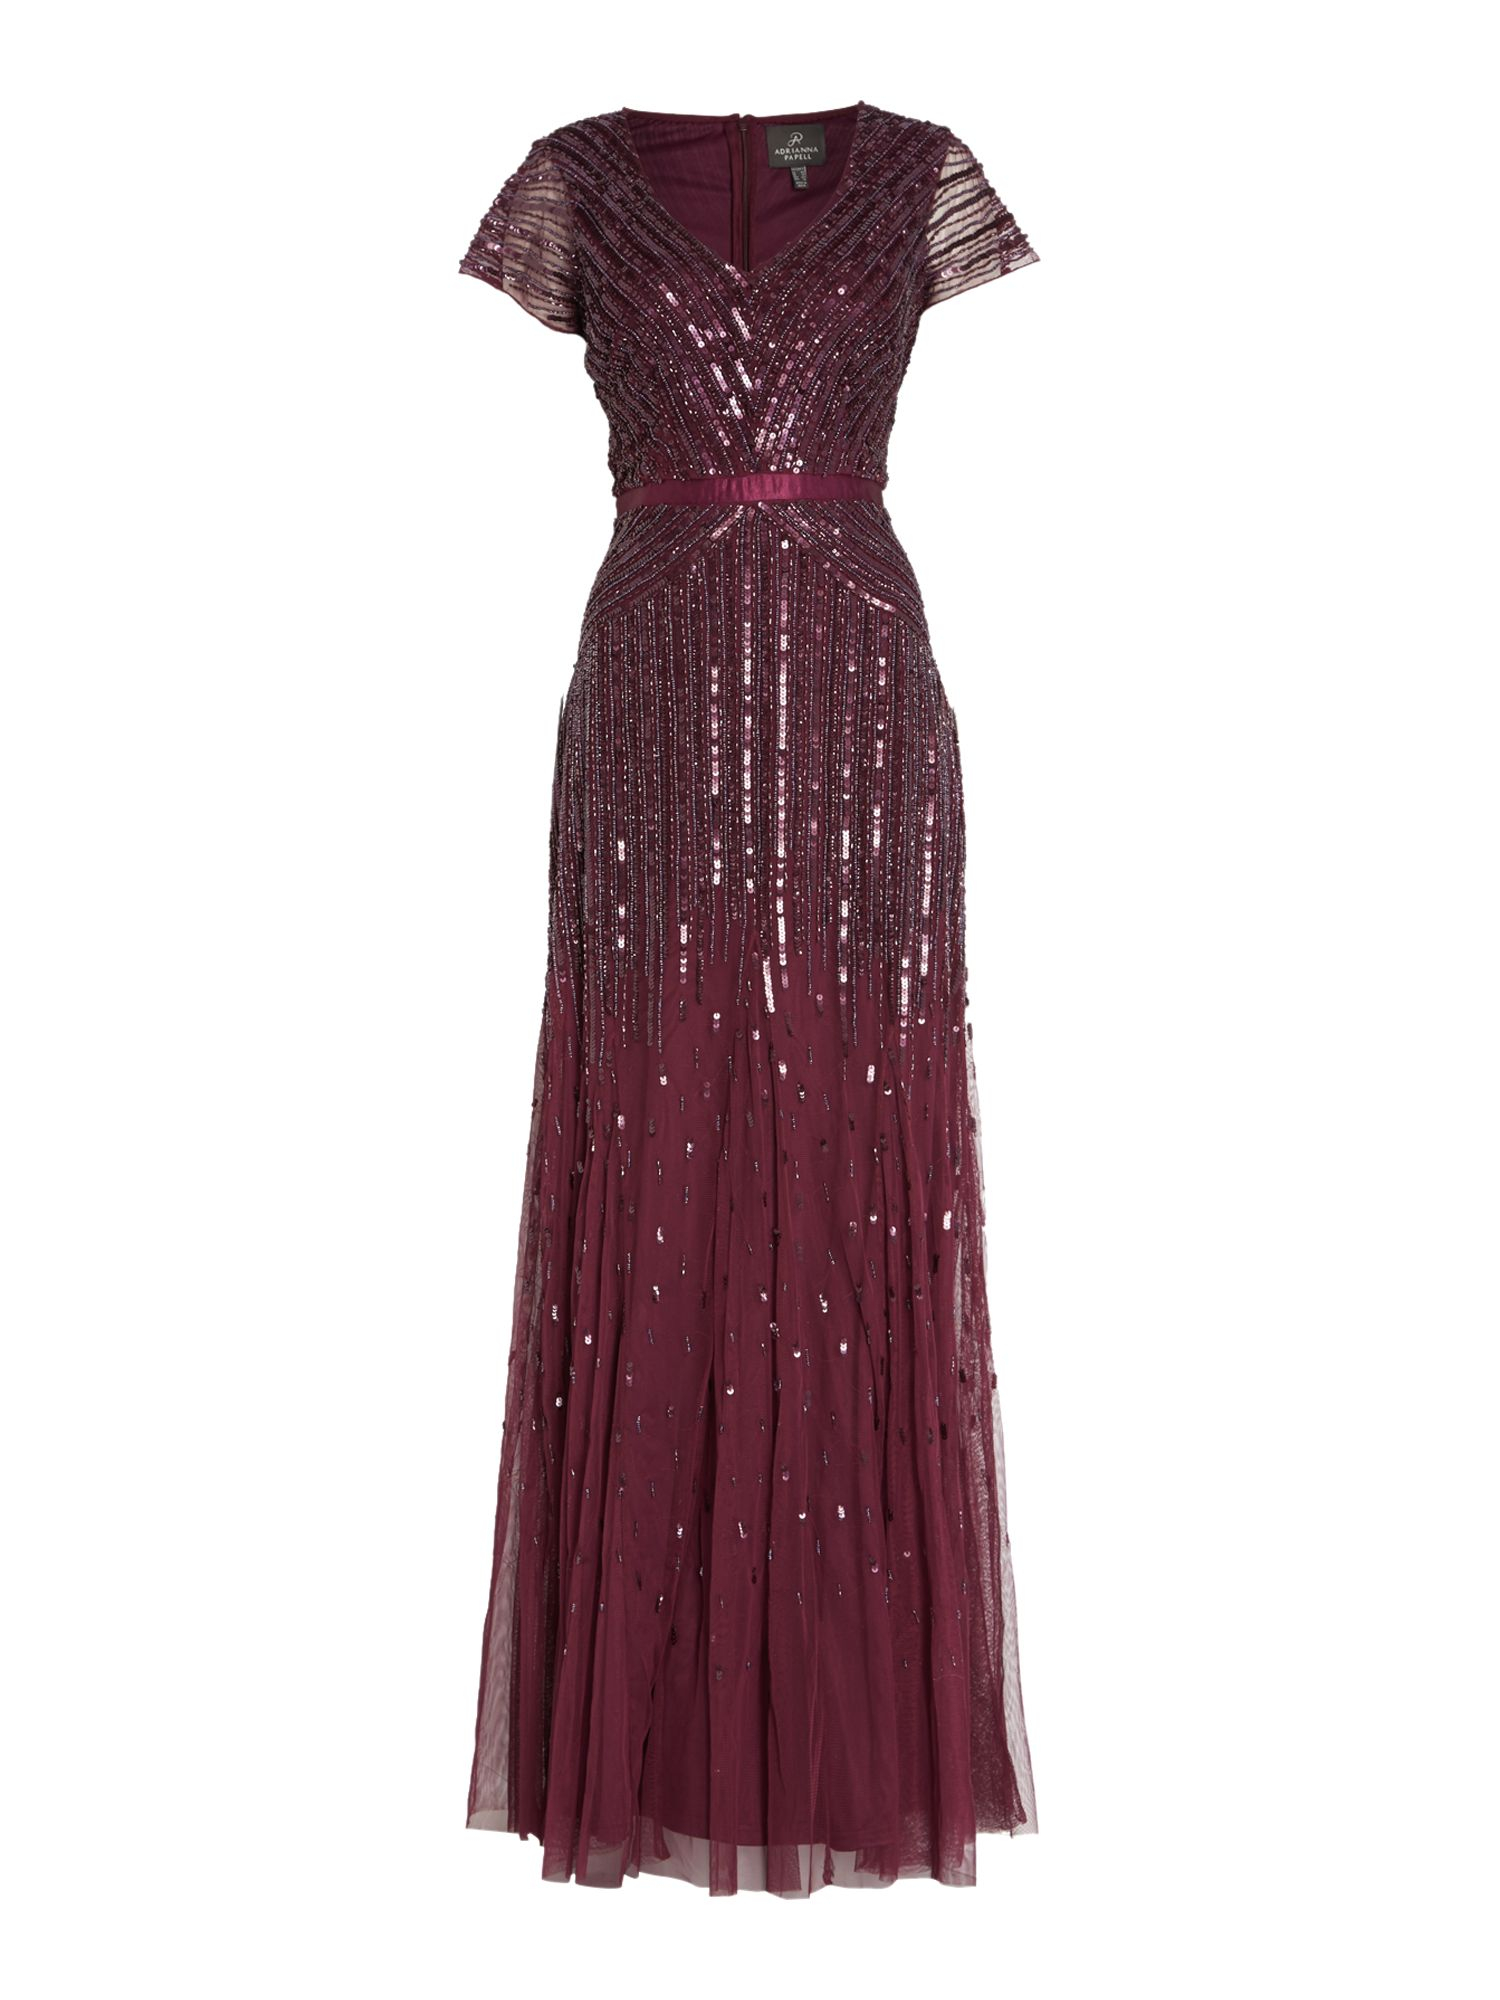 Supermodel Style Wars Gigi Hadid And Irina Shayk Try To Steal Spotlight In Revealing Dresses 31013866 besides 09 furthermore Fish Dissection together with Adrianna Papell Cap Sleeve Mesh Beaded Dress Burgundy 1 also 511981. on oscar model questions